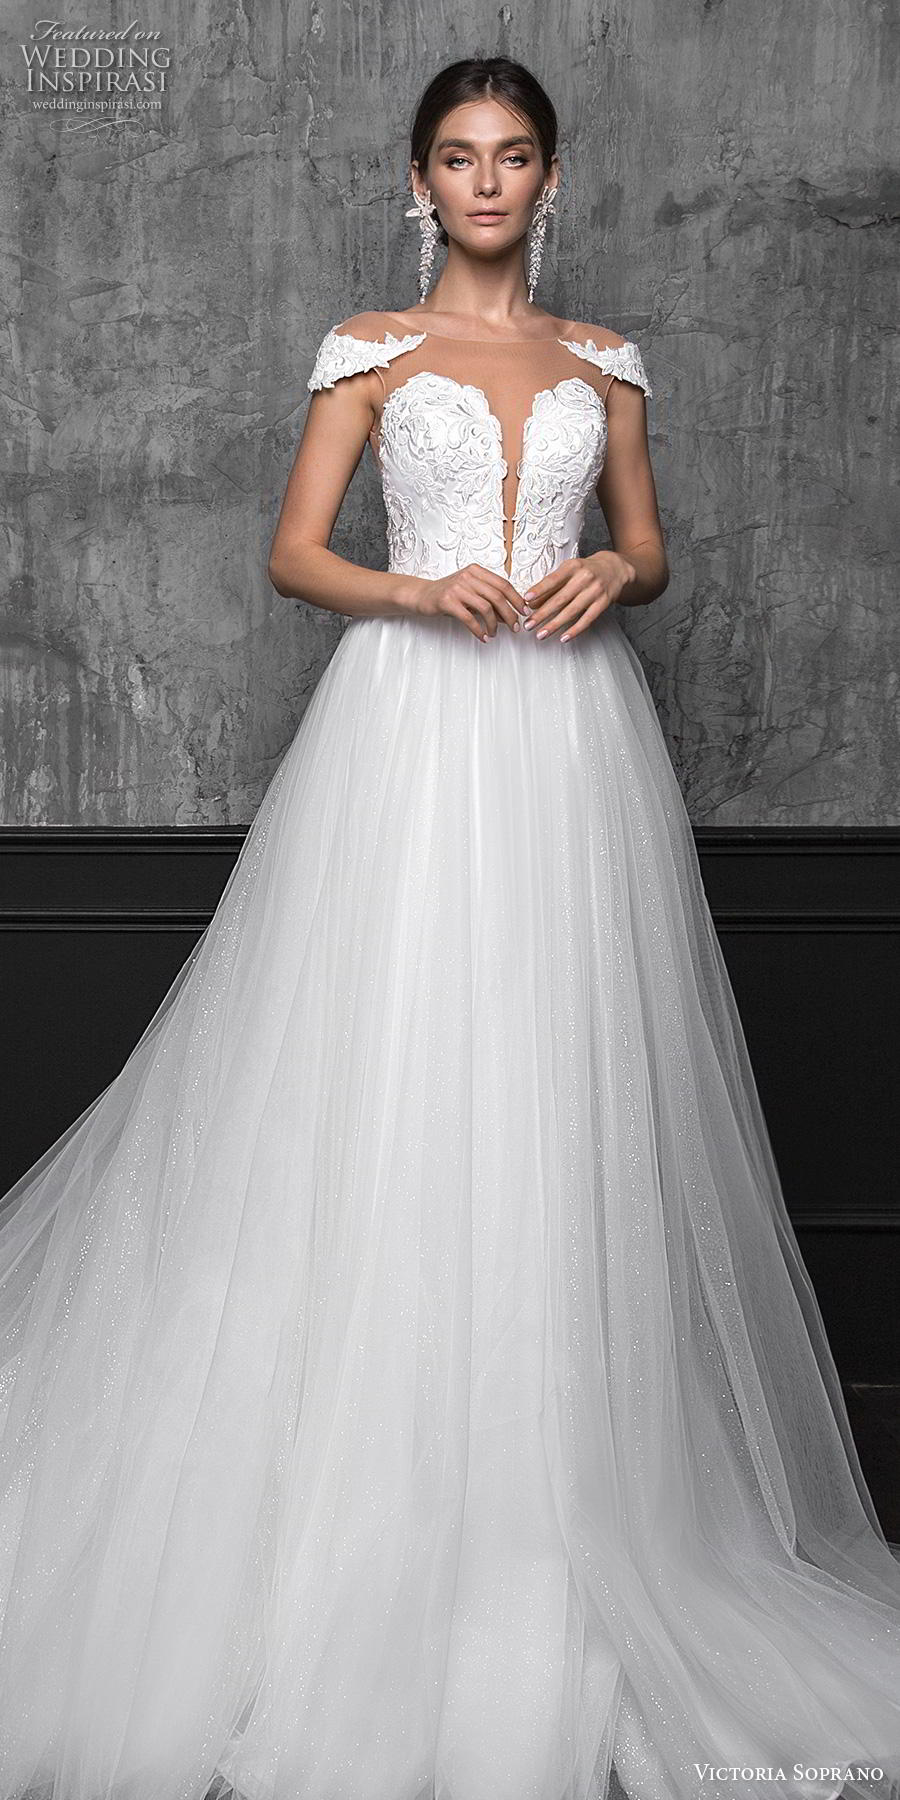 victoria soprano 2020 bridal cap sleeves illusion bateau plunging sweetheart neckline heavily embellished bodice slit skirt romantic a line wedding dress sheer button back chapel train (14) lv